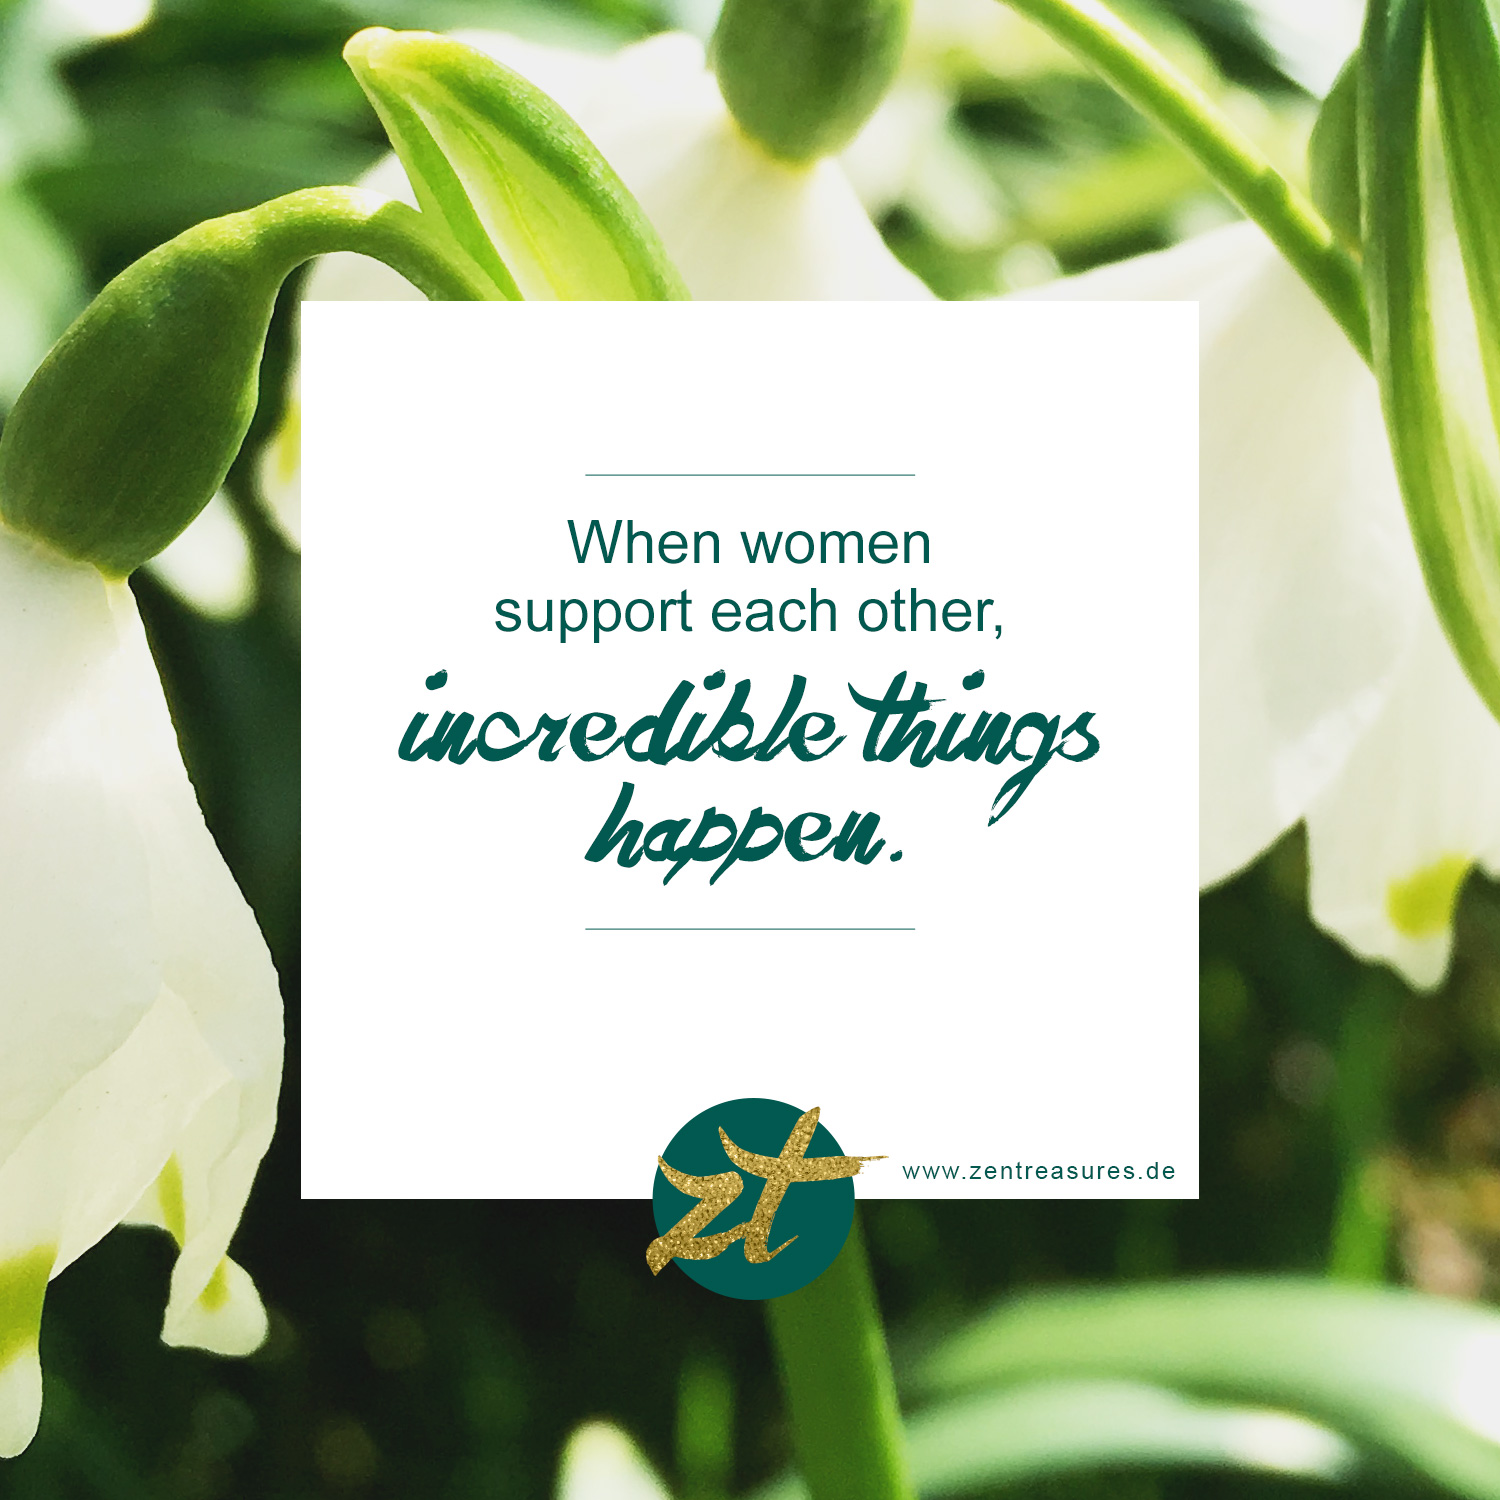 When Women support each other, incredible things happen. Zitat des Monats März auf ZENtreasures.de